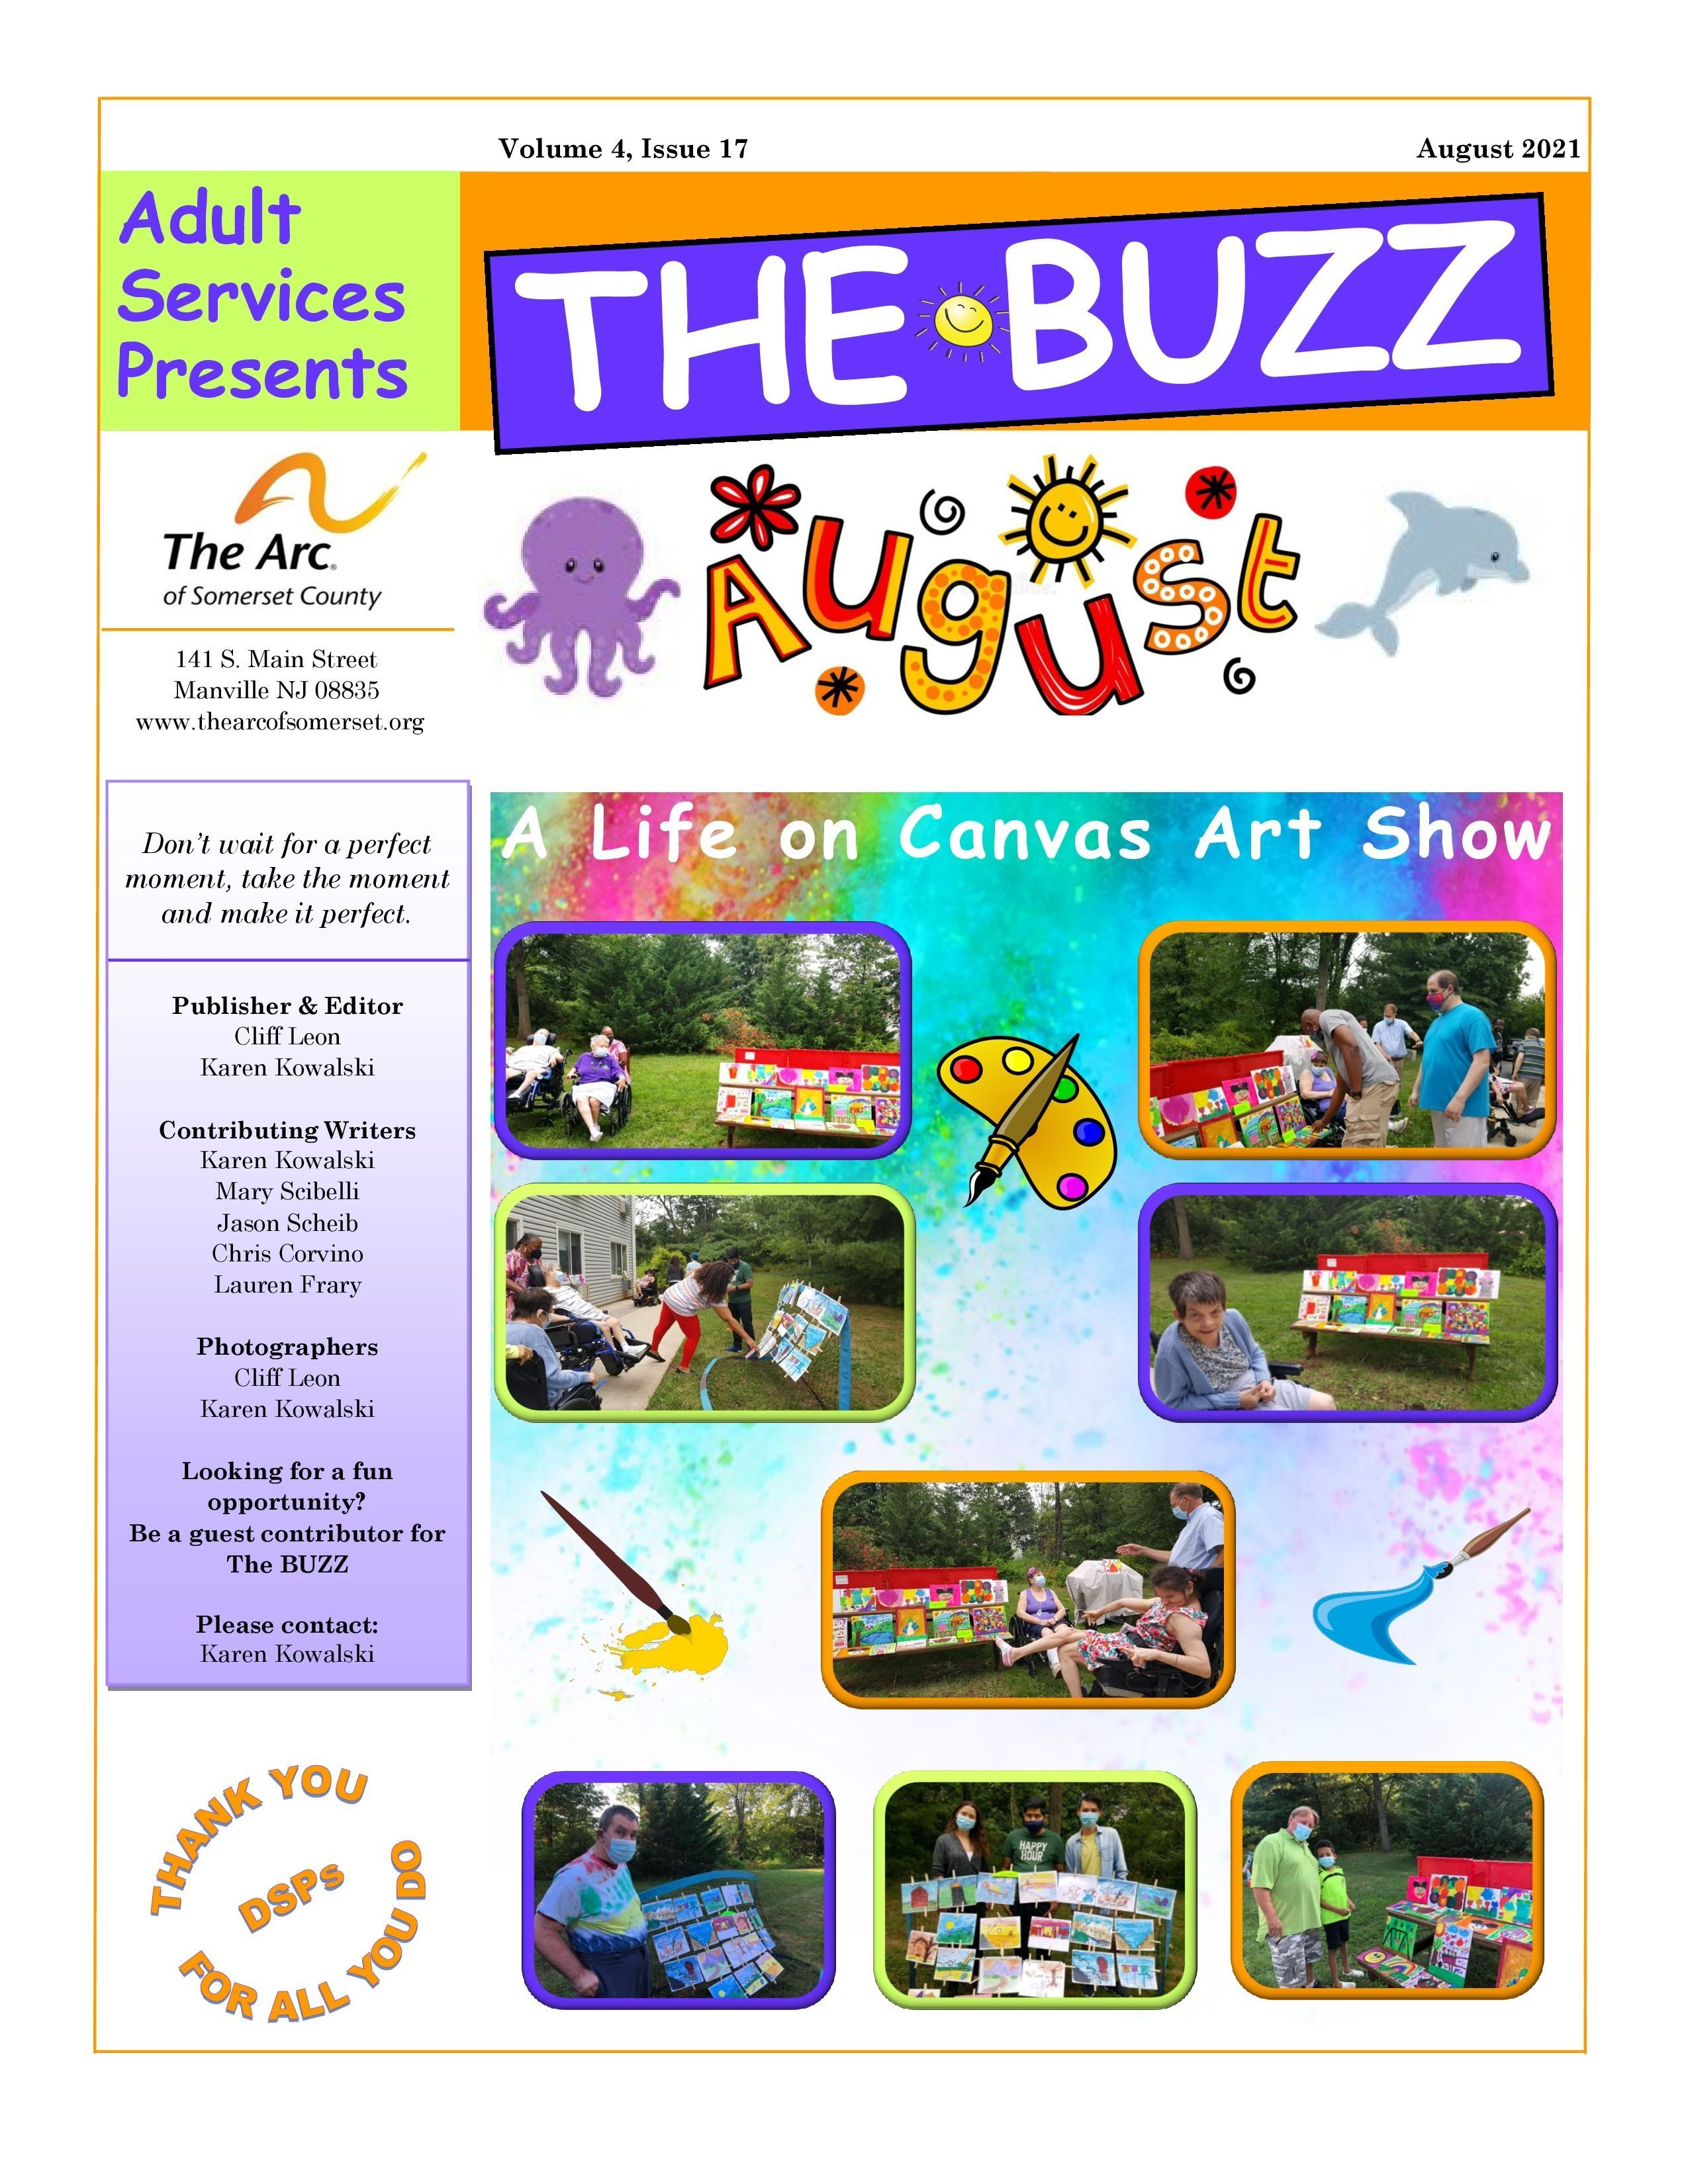 Check Out This Week's BUZZ  Newsletter - August 20, 2021